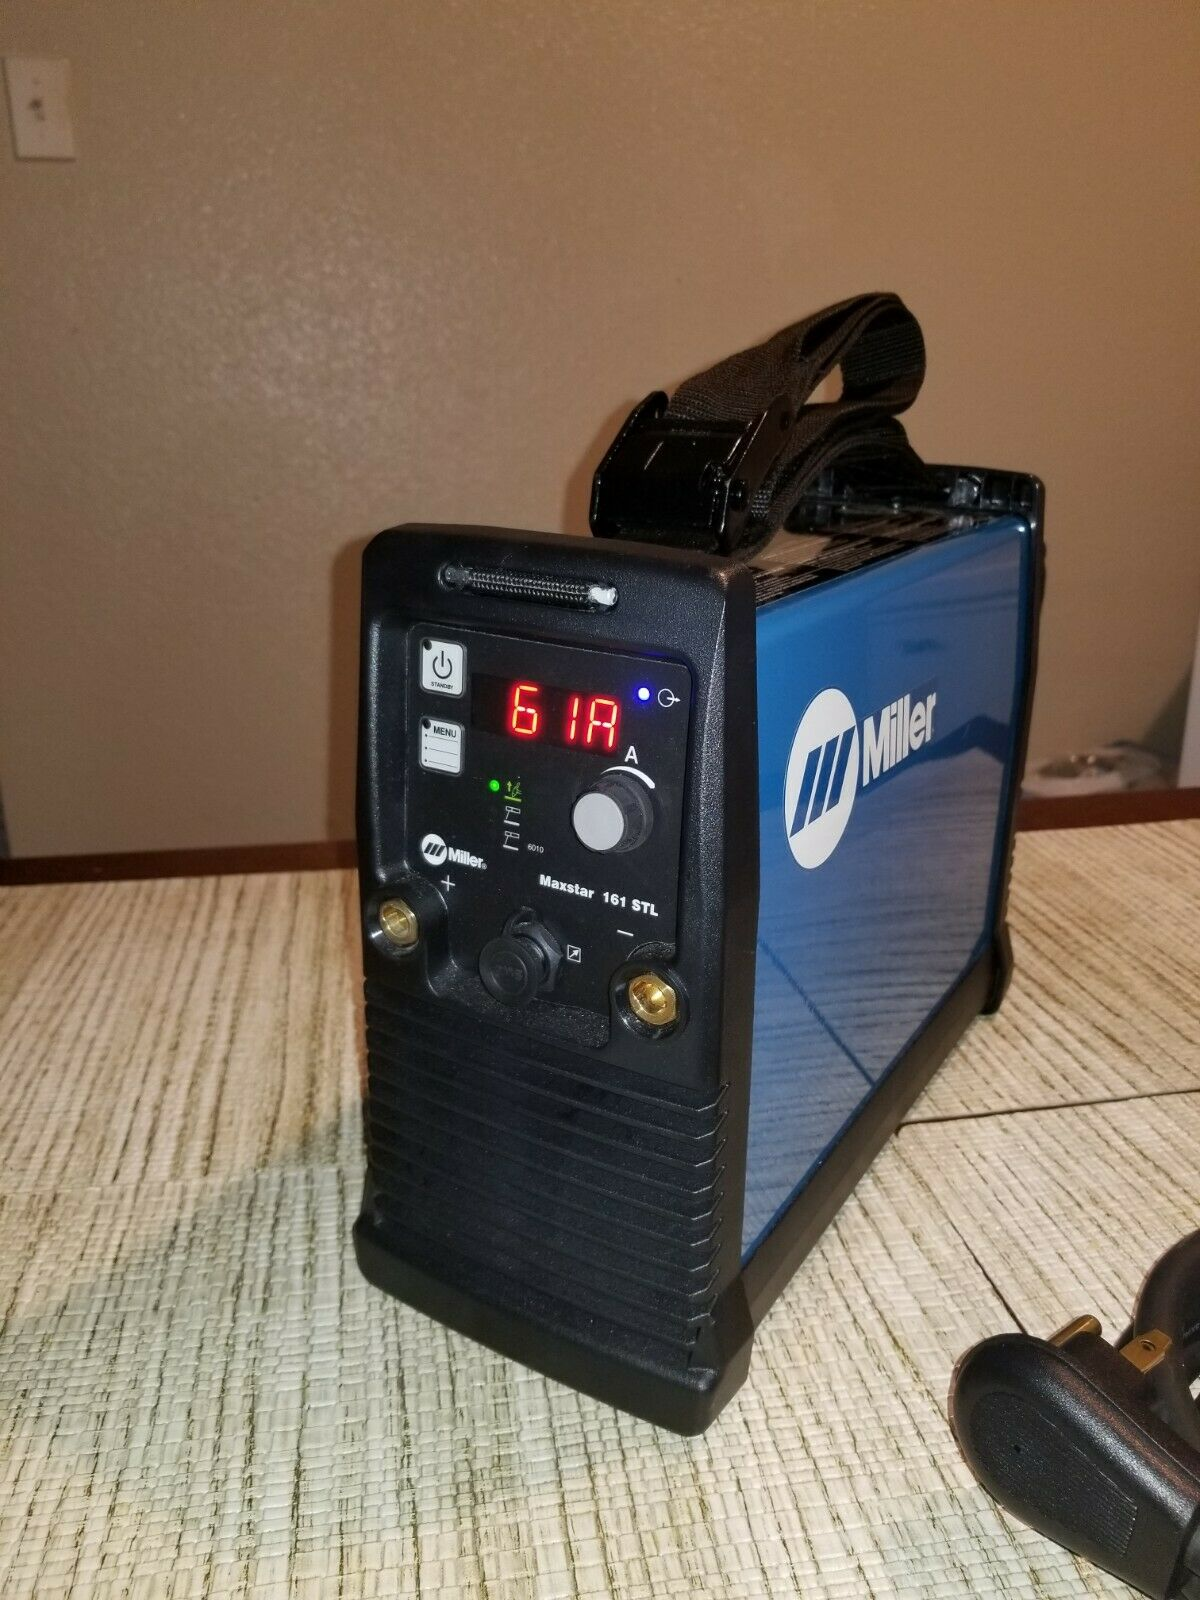 AMiller Maxstar 161 SLT . Tig ,Stick and 6010 capable.. Available Now for 1300.00